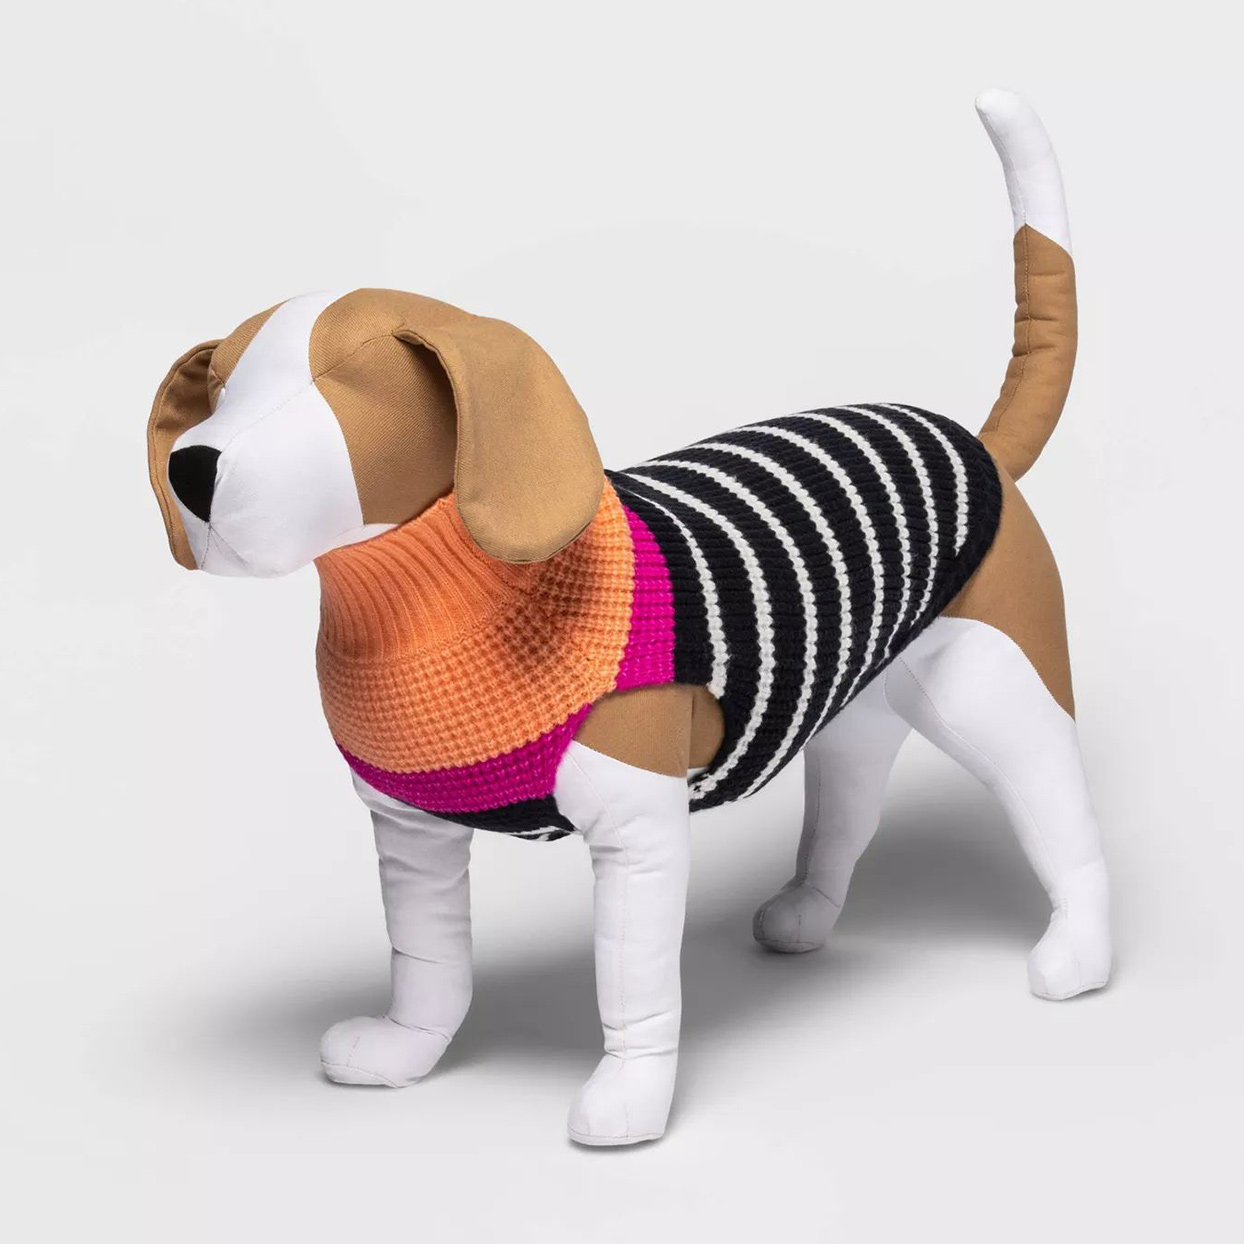 Toy plush dog wearing a Boots & Barkley™ Holiday Striped Sweater on a gray background